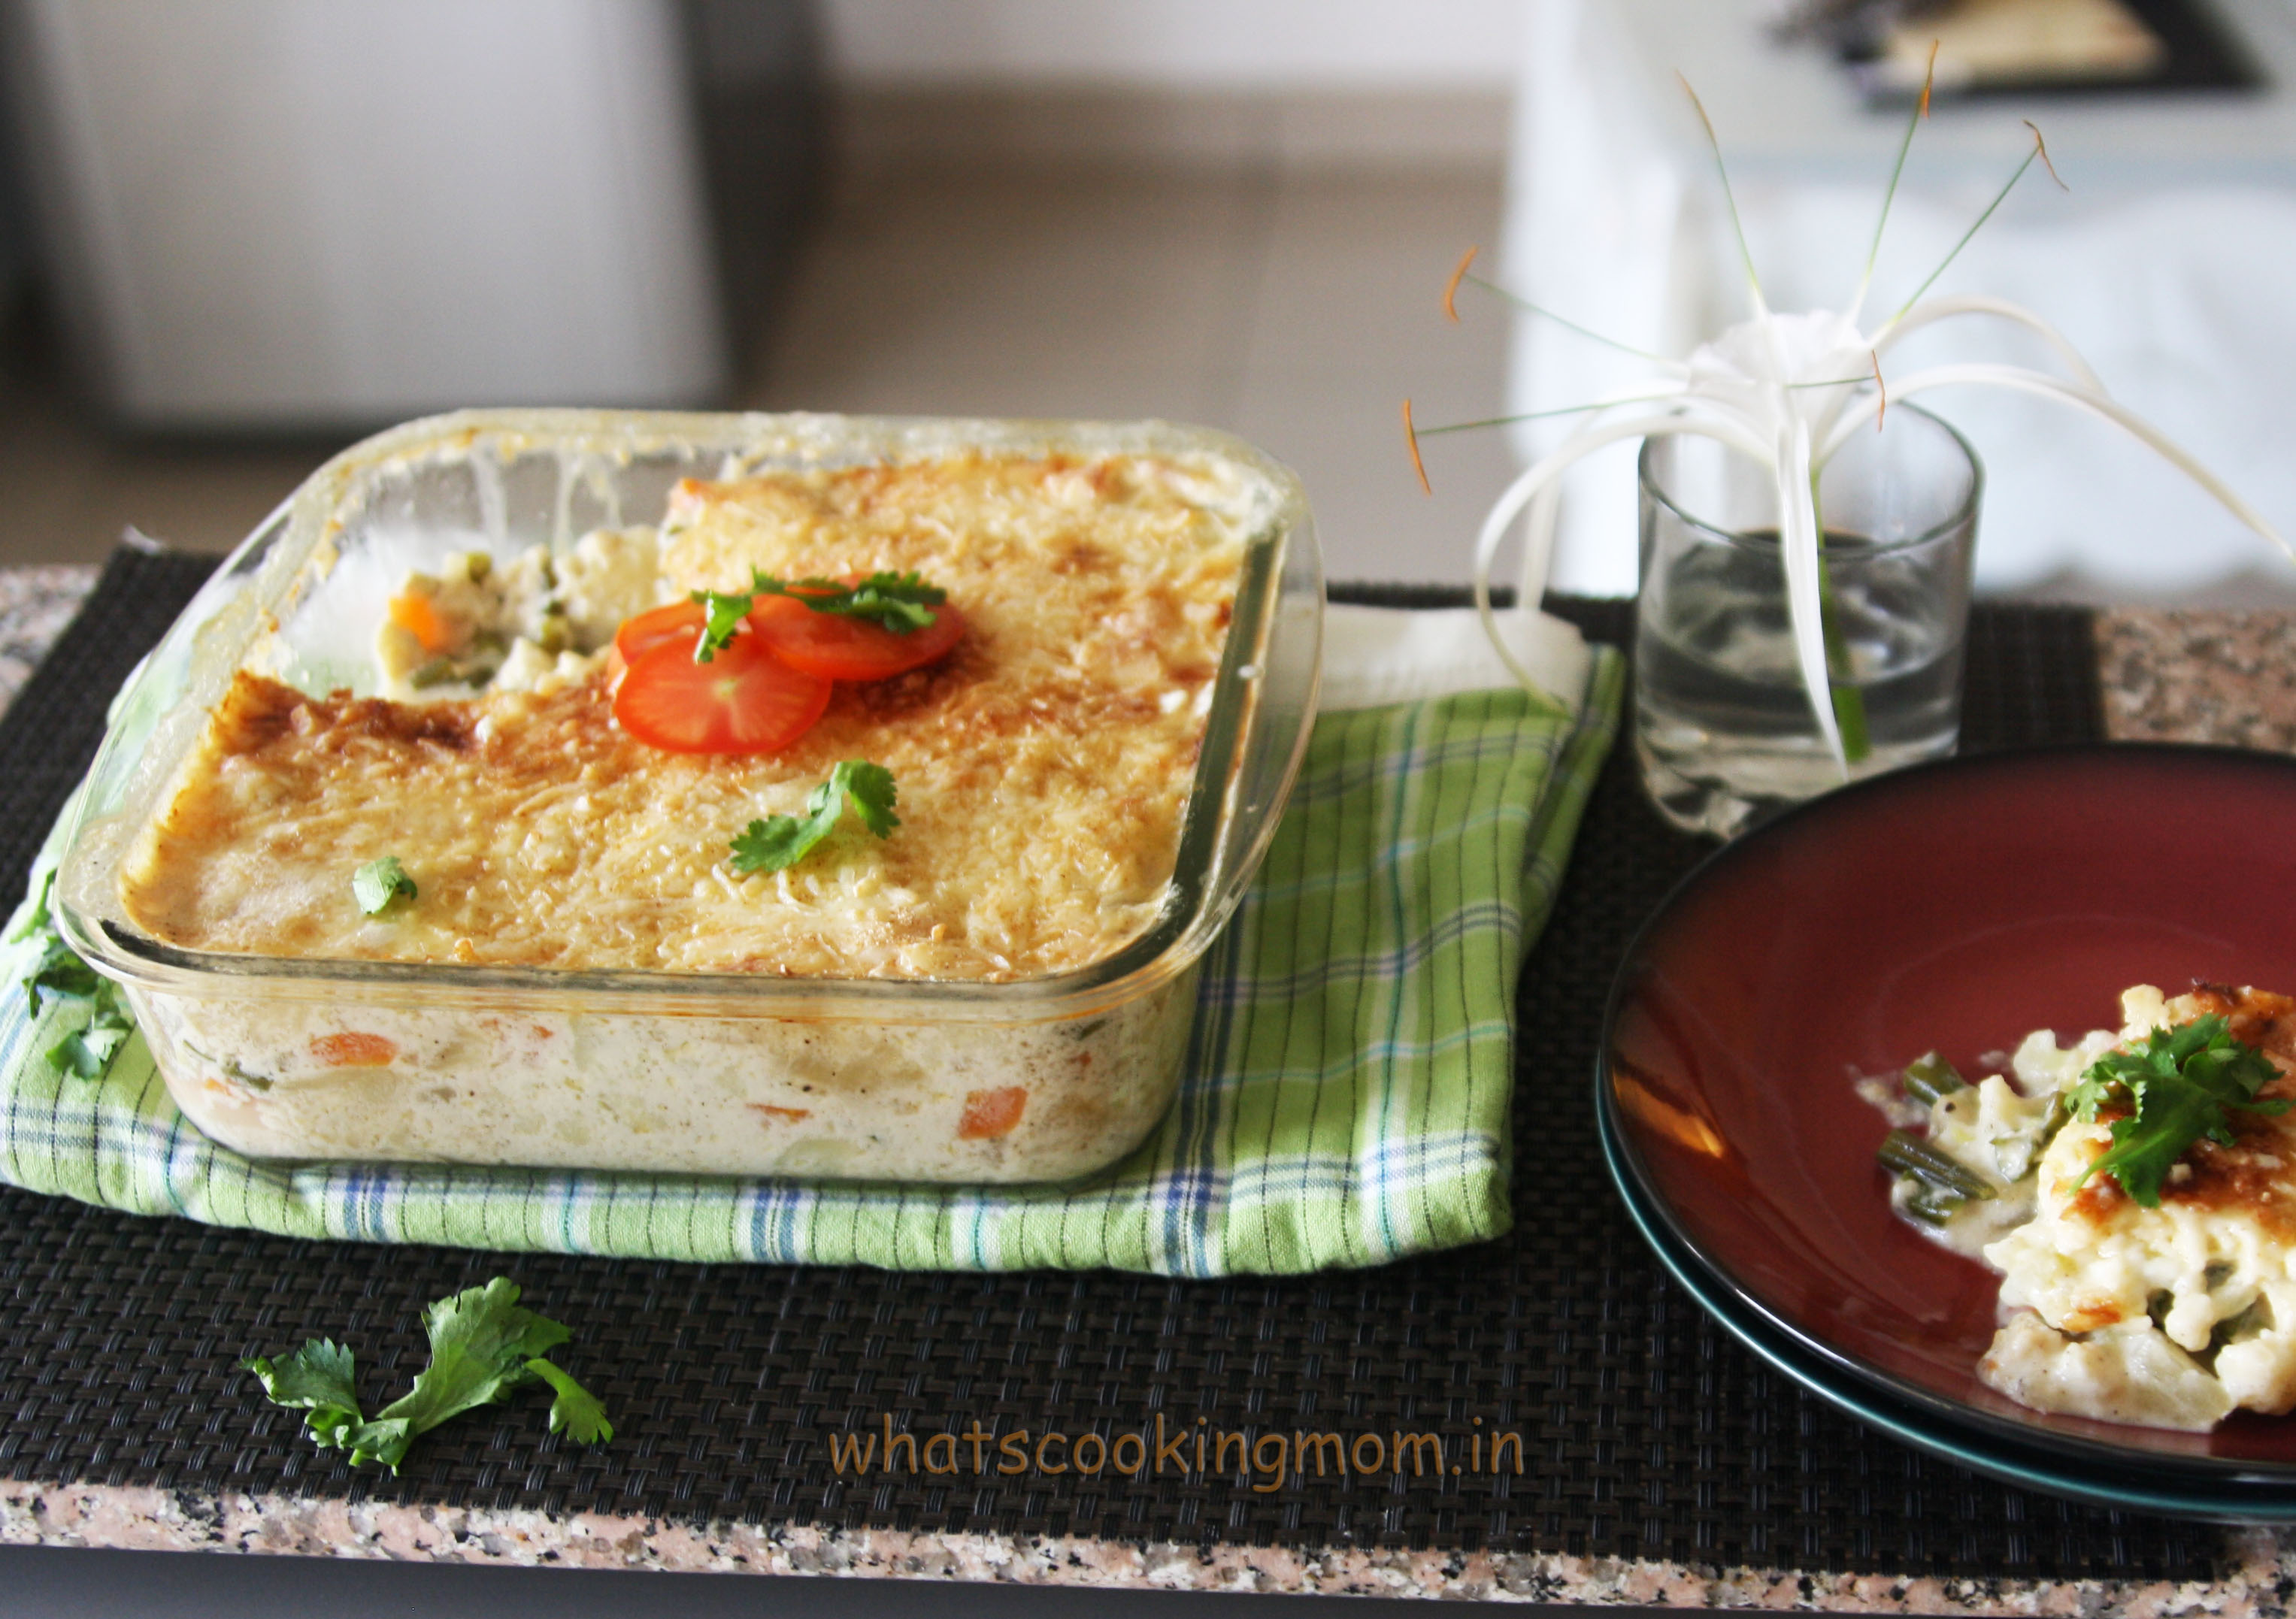 Vegetable au Gratin | whatscookingmom.inwhatscookingmom.in